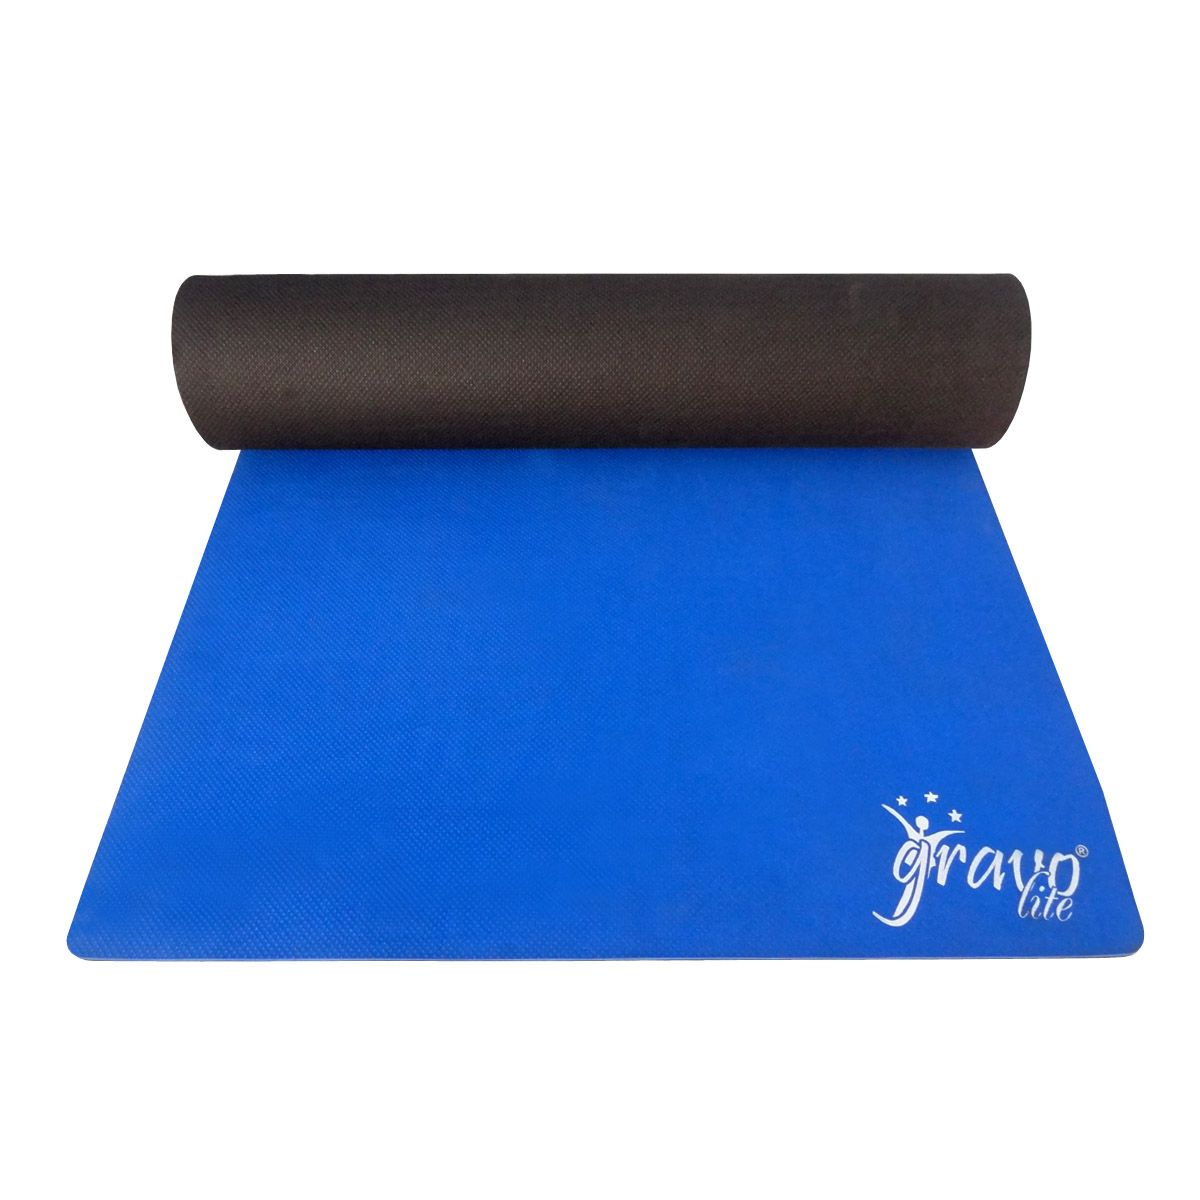 quality mats sit and for premium pilates mat thick ups exercise yoga maximo perfect gym stretching extra multi nbr fitness purpose